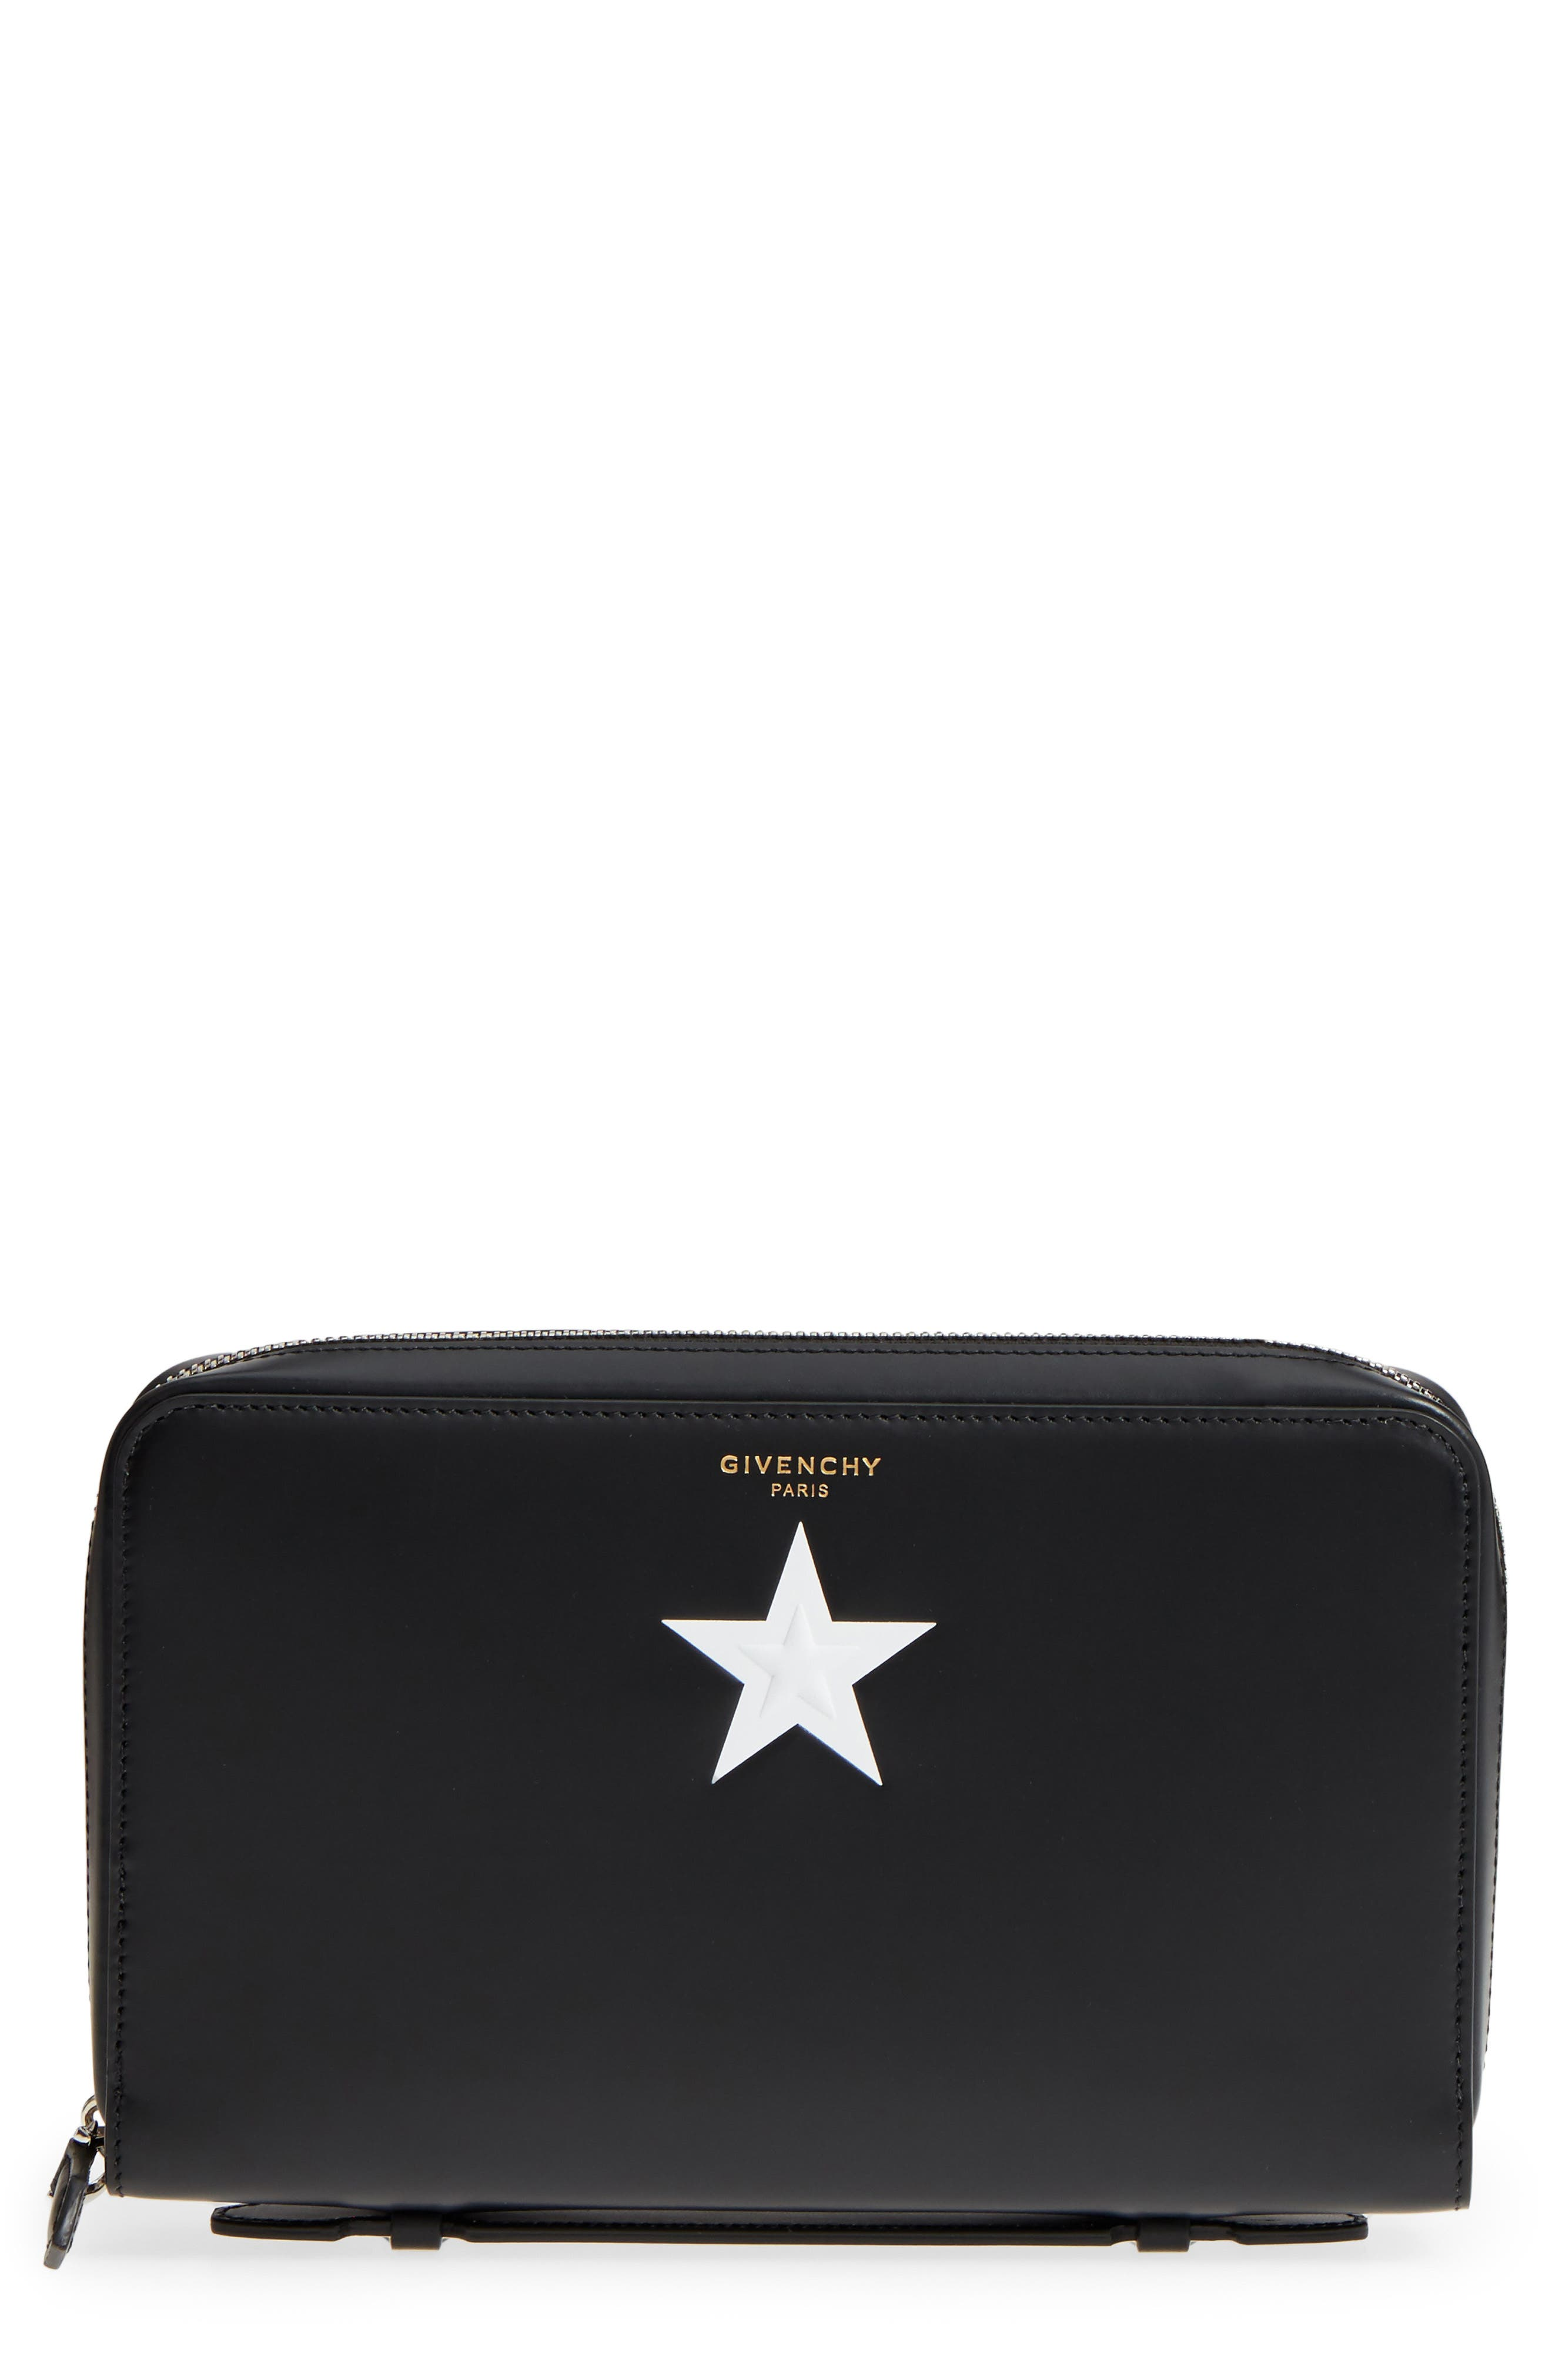 Givenchy Star Leather Zip Pouch